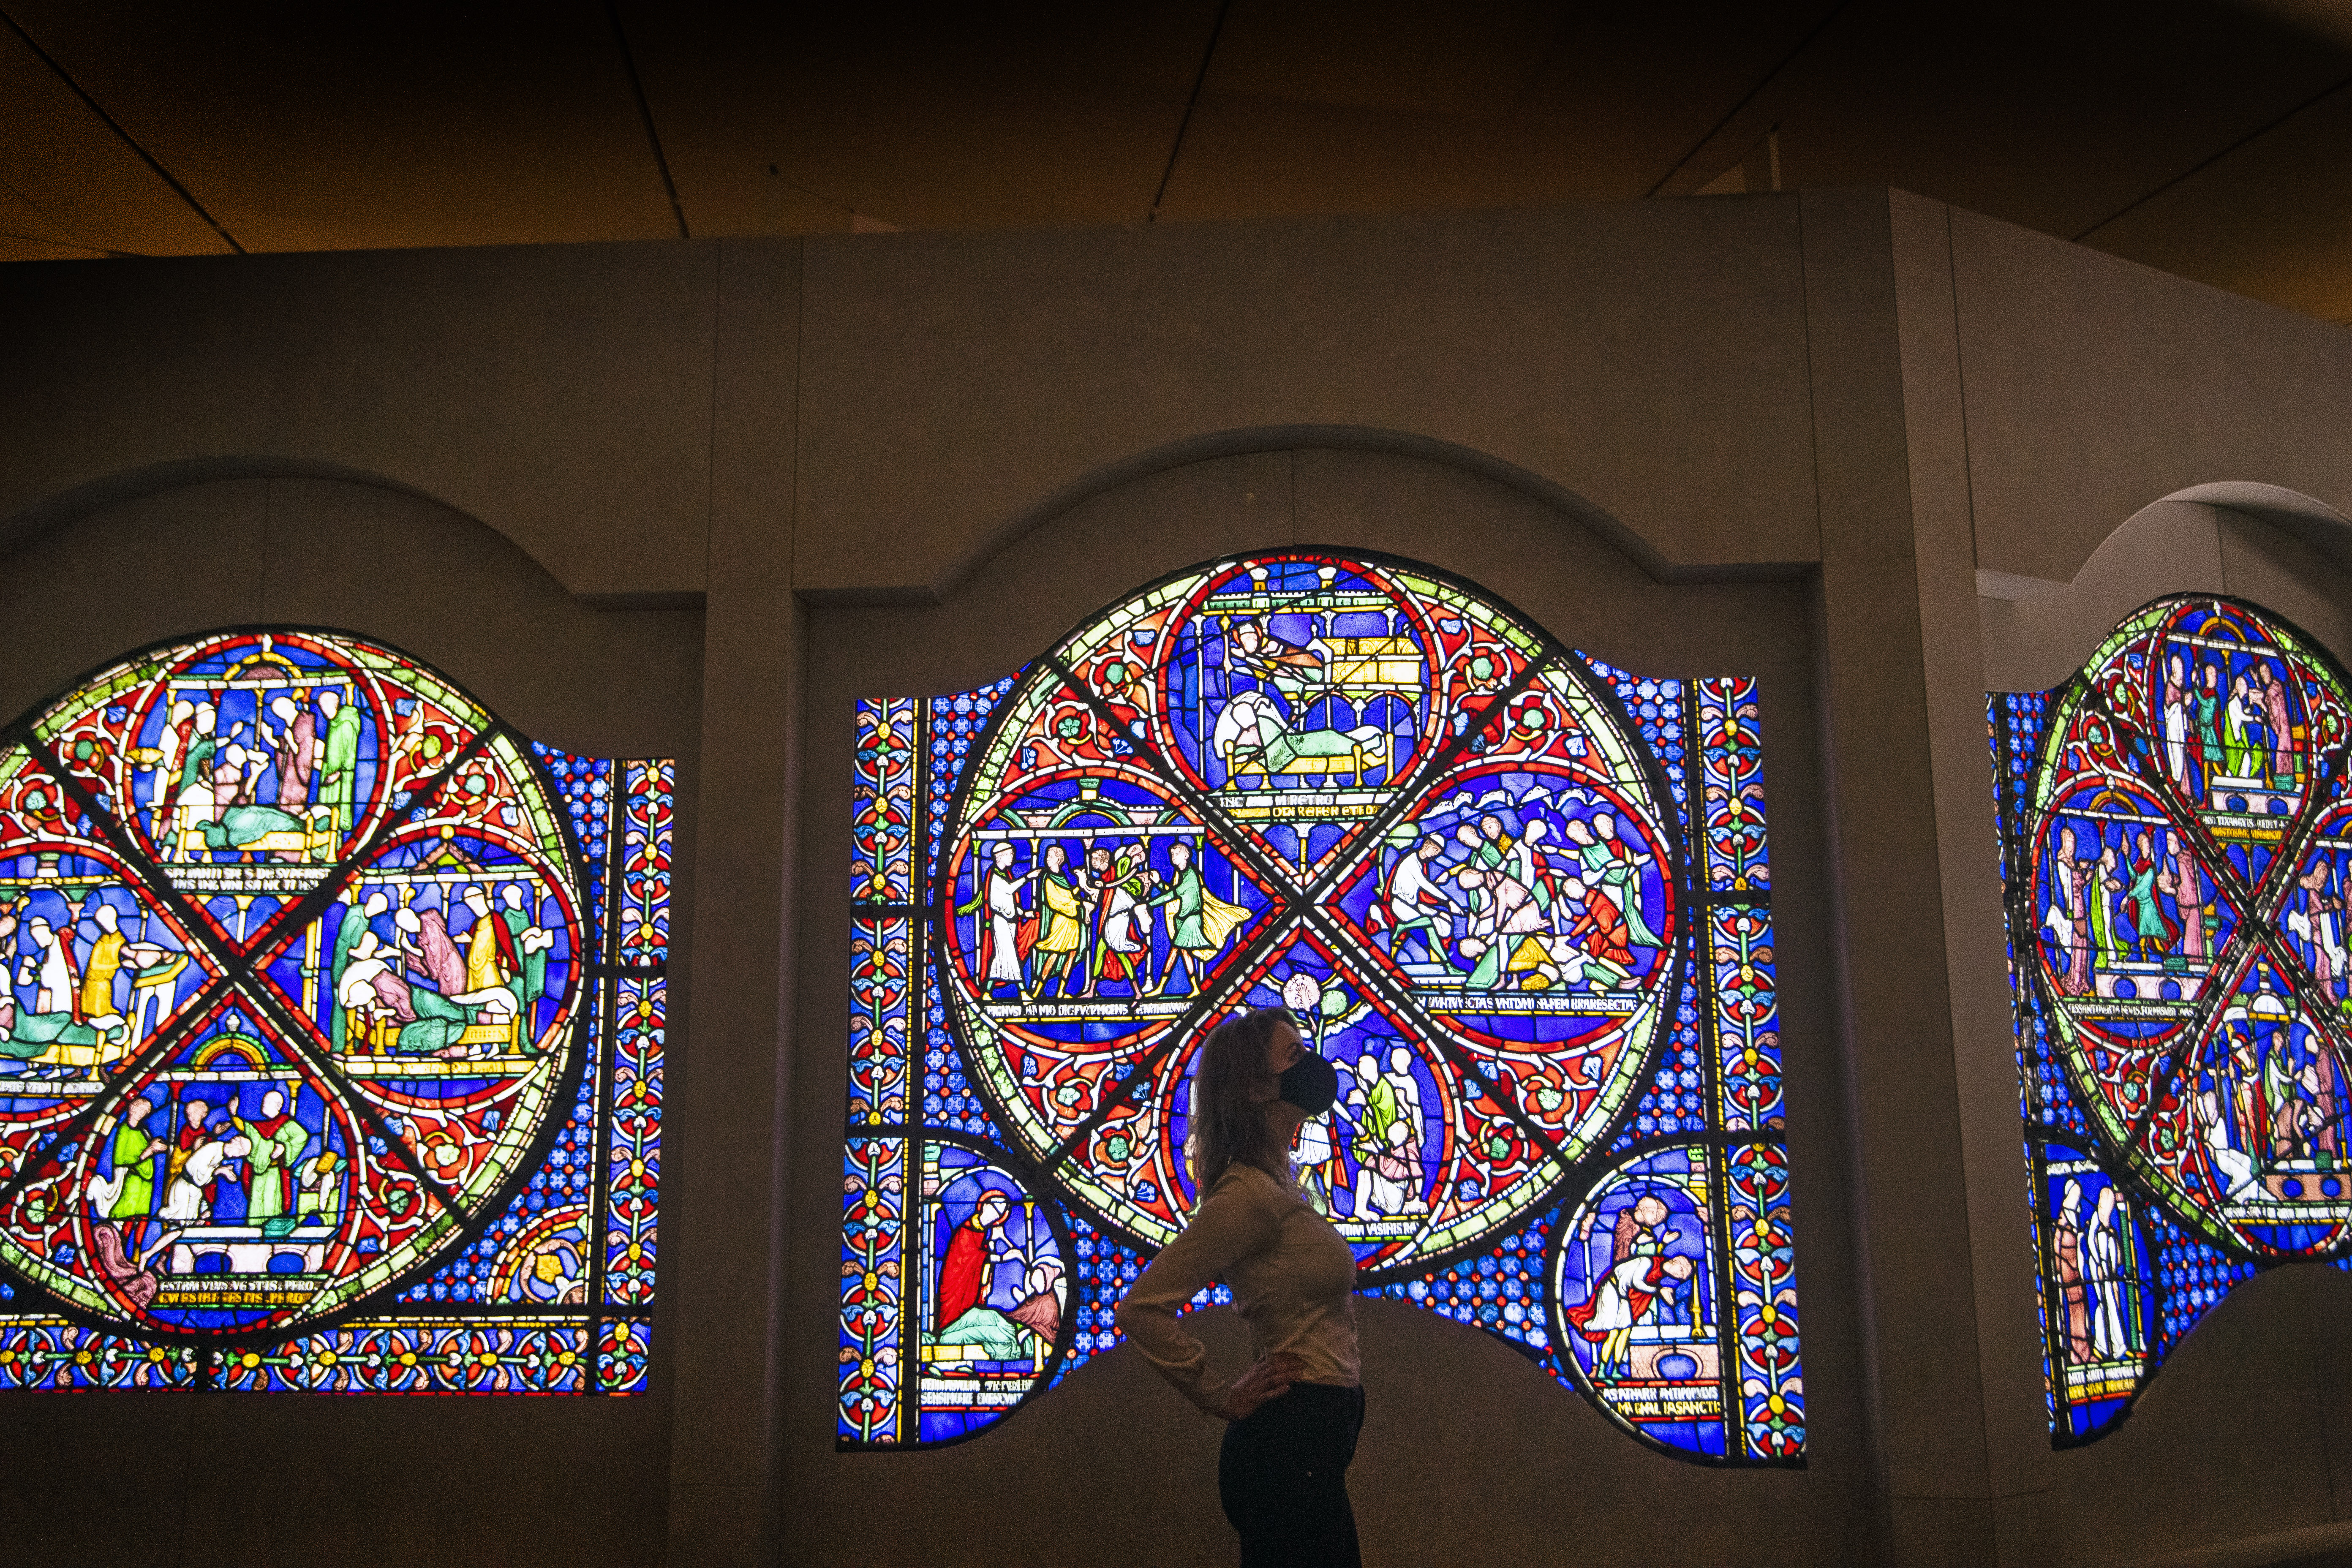 """<p>A staff member at the British Museum in London looks at an entire 800-year-old stained glass window on loan from Canterbury Cathedral to the museum for a new """"Thomas Becket: murder and the making of a saint"""" exhibition which runs May 20 to August 22, 2021, as the museum gets ready for the public ahead of further easing of lockdown restrictions in England. Picture date: Tuesday May 11, 2021.</p>"""